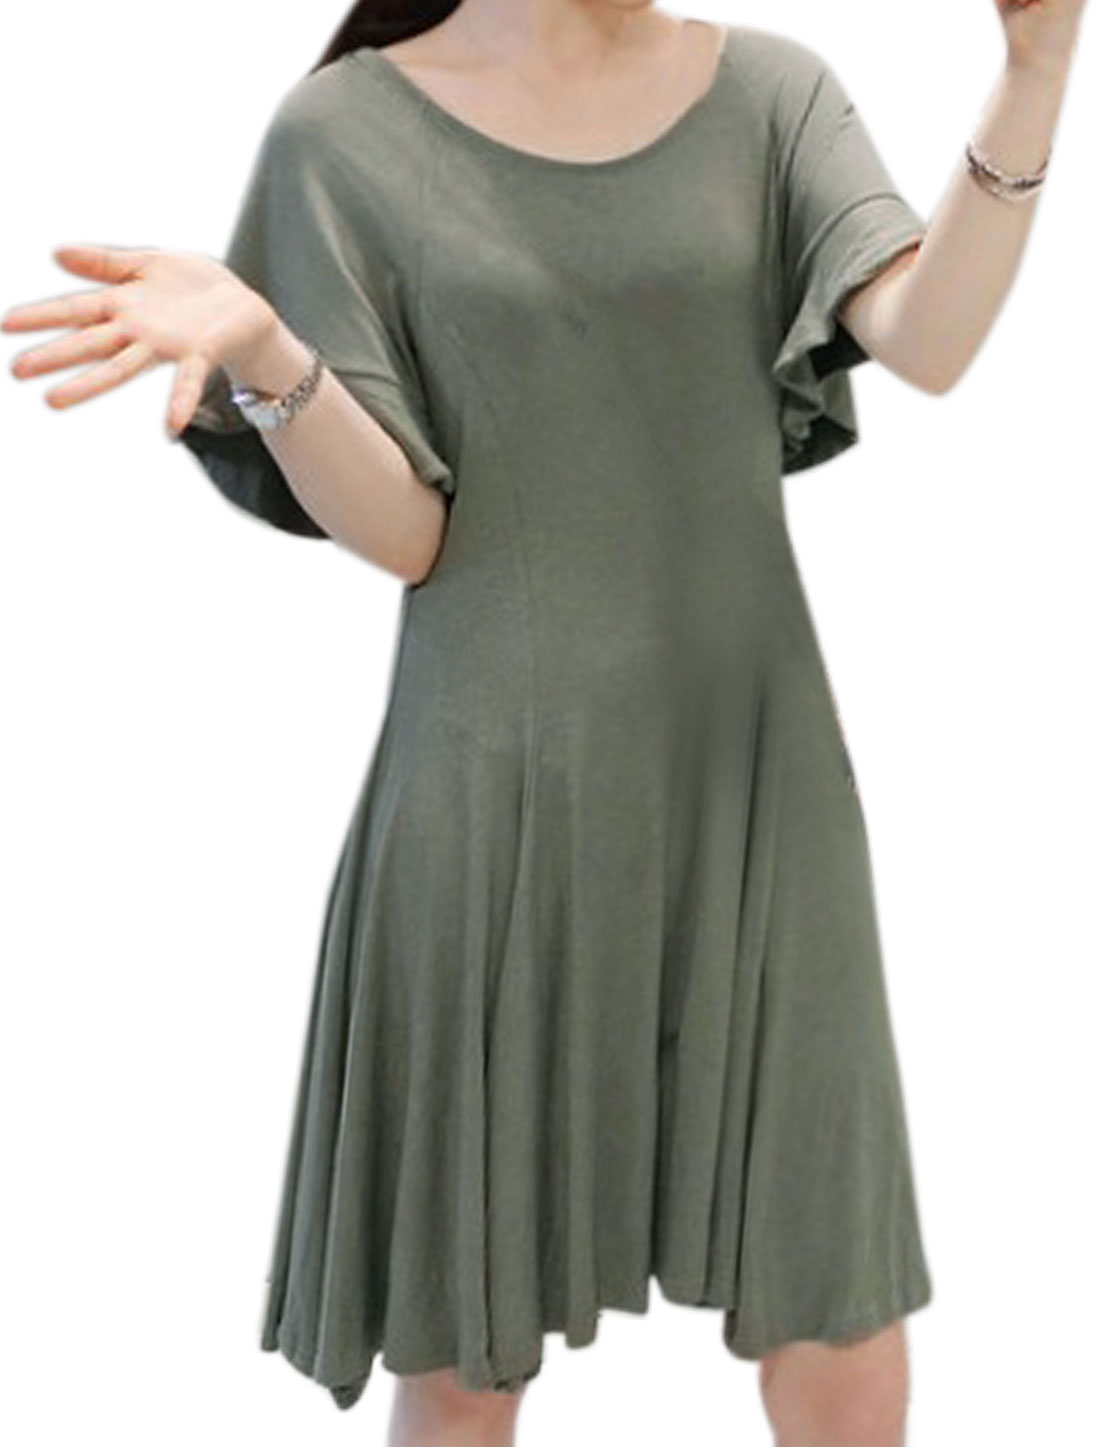 Women Scoop Neck Ruffled Sleeves Fit and Flare Dress Gray XS